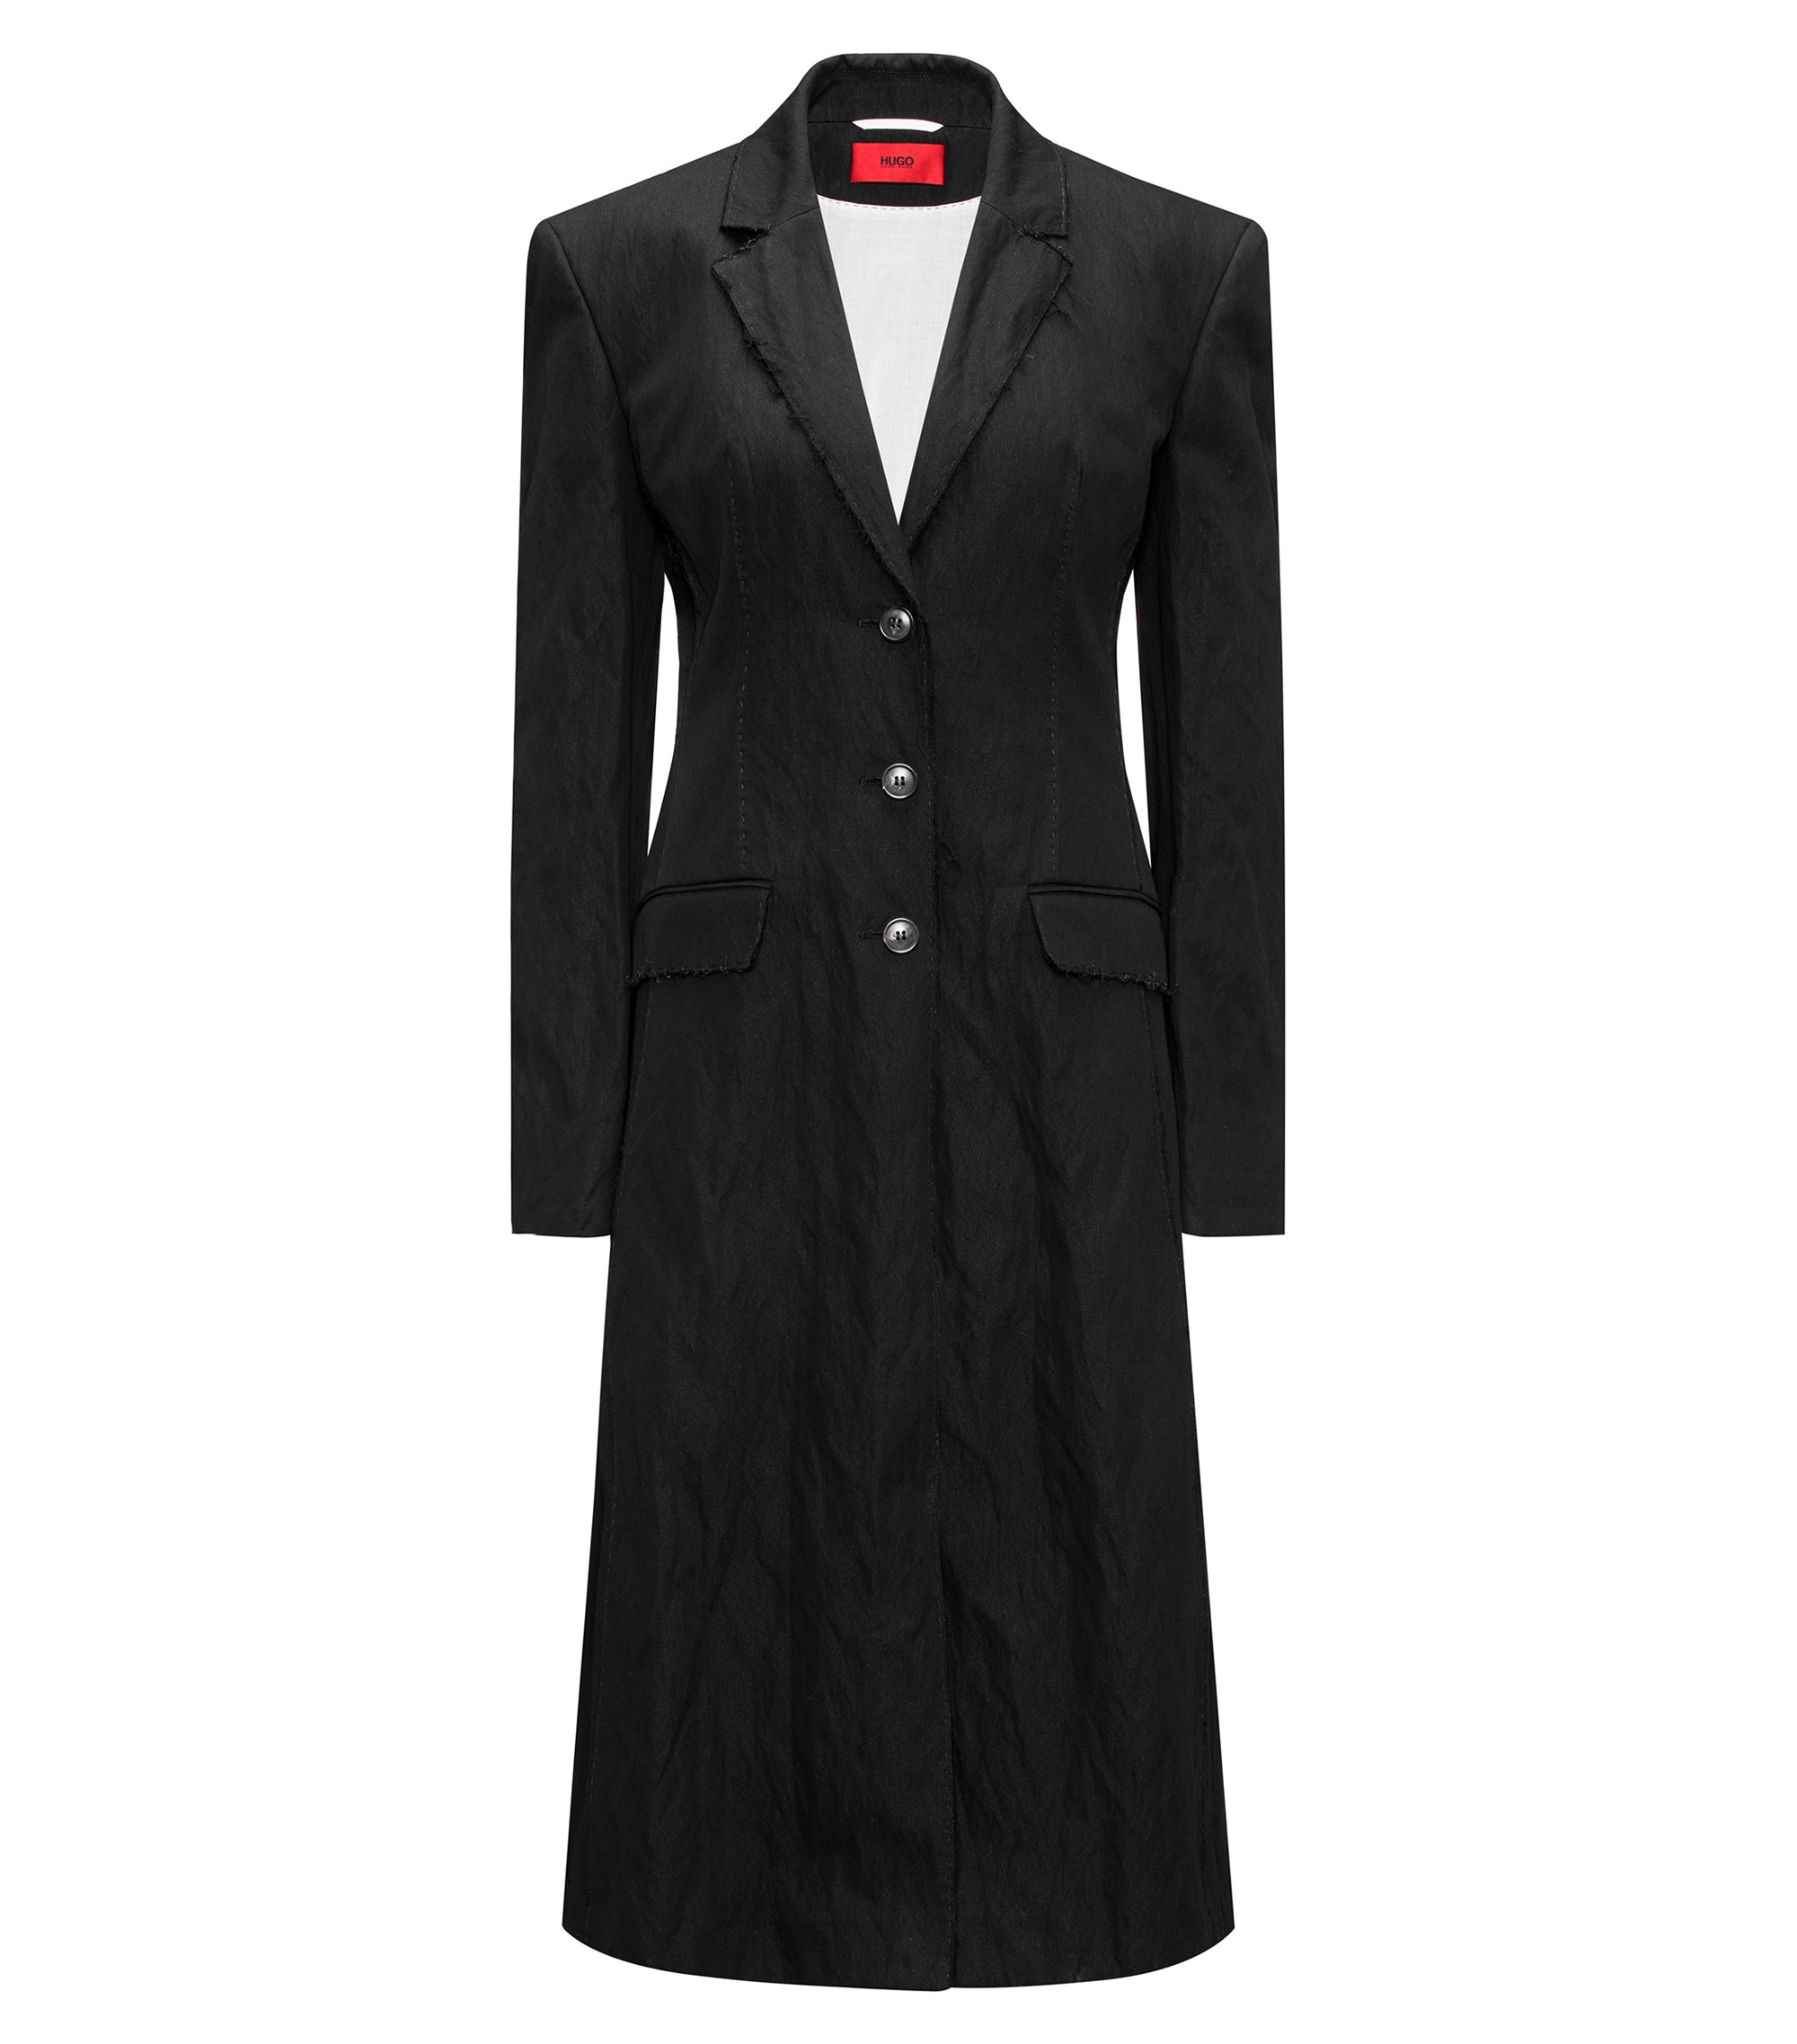 Cotton Blend Long Coat, Black